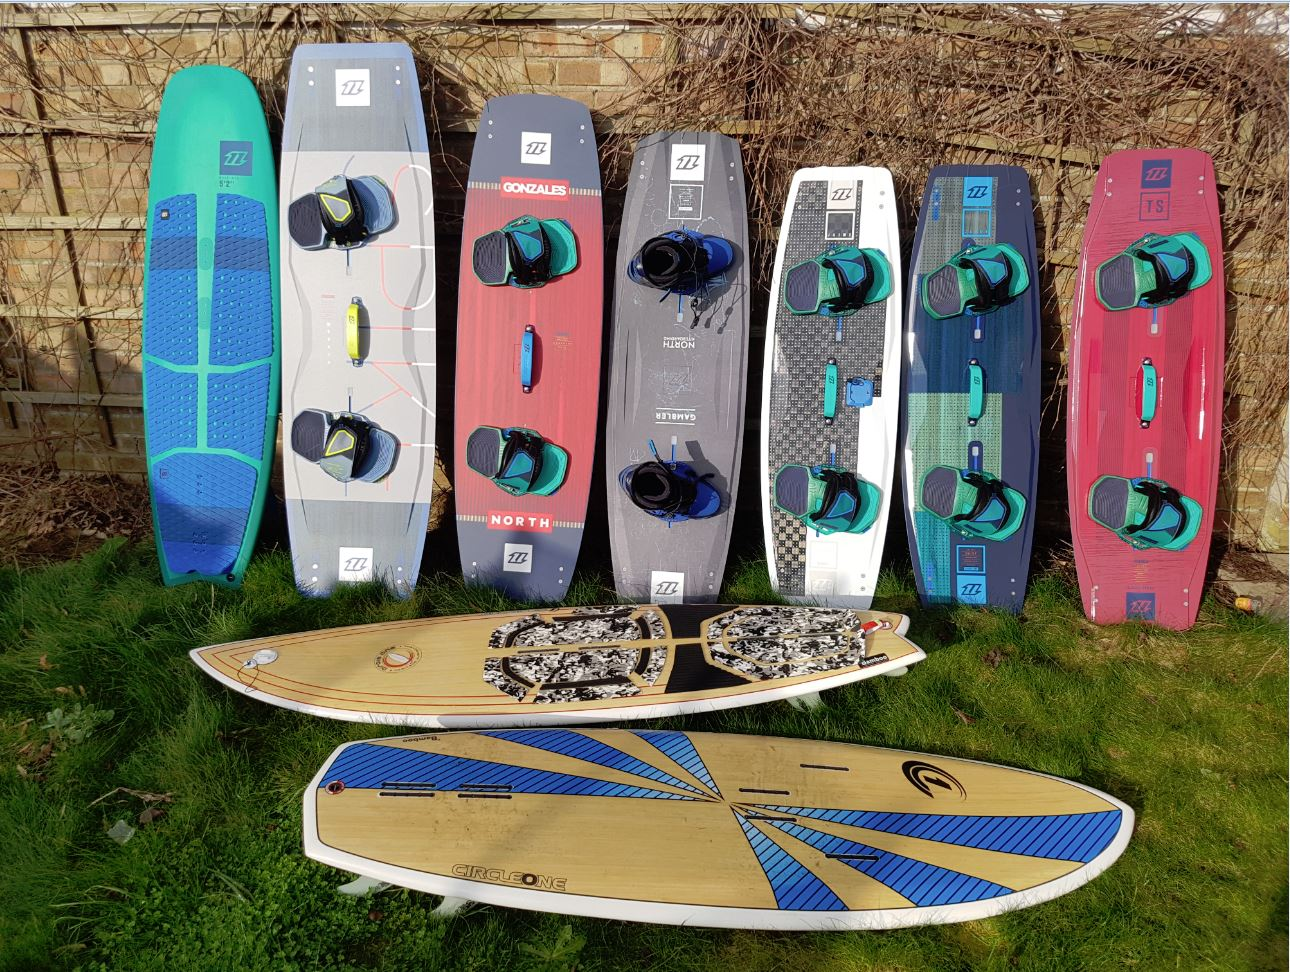 Hire kitesurf equipment essex